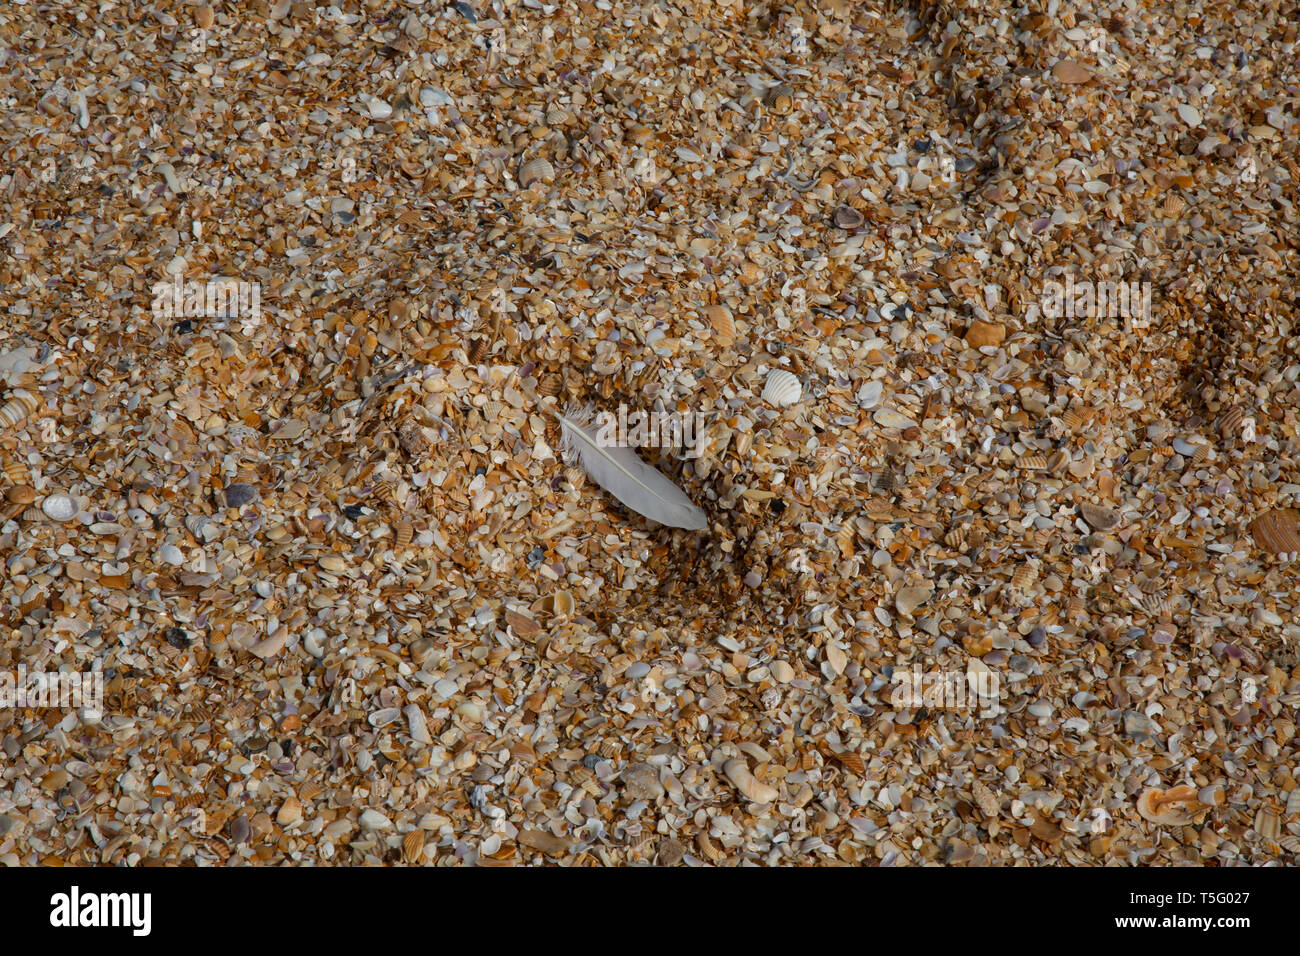 Feather Found in the Sand Stock Photo